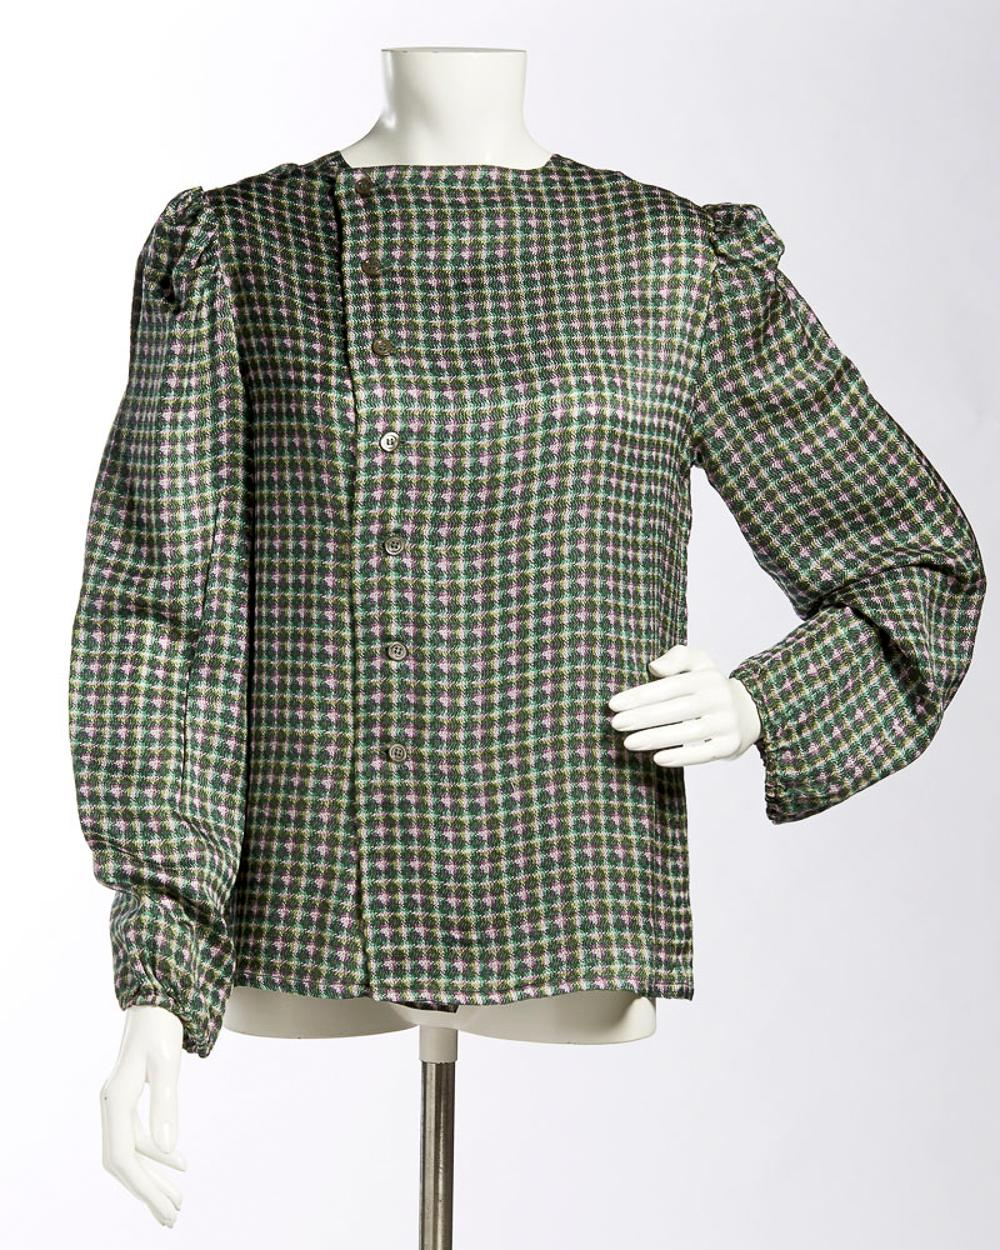 Blouse in printed fabric in shades of green and lilac